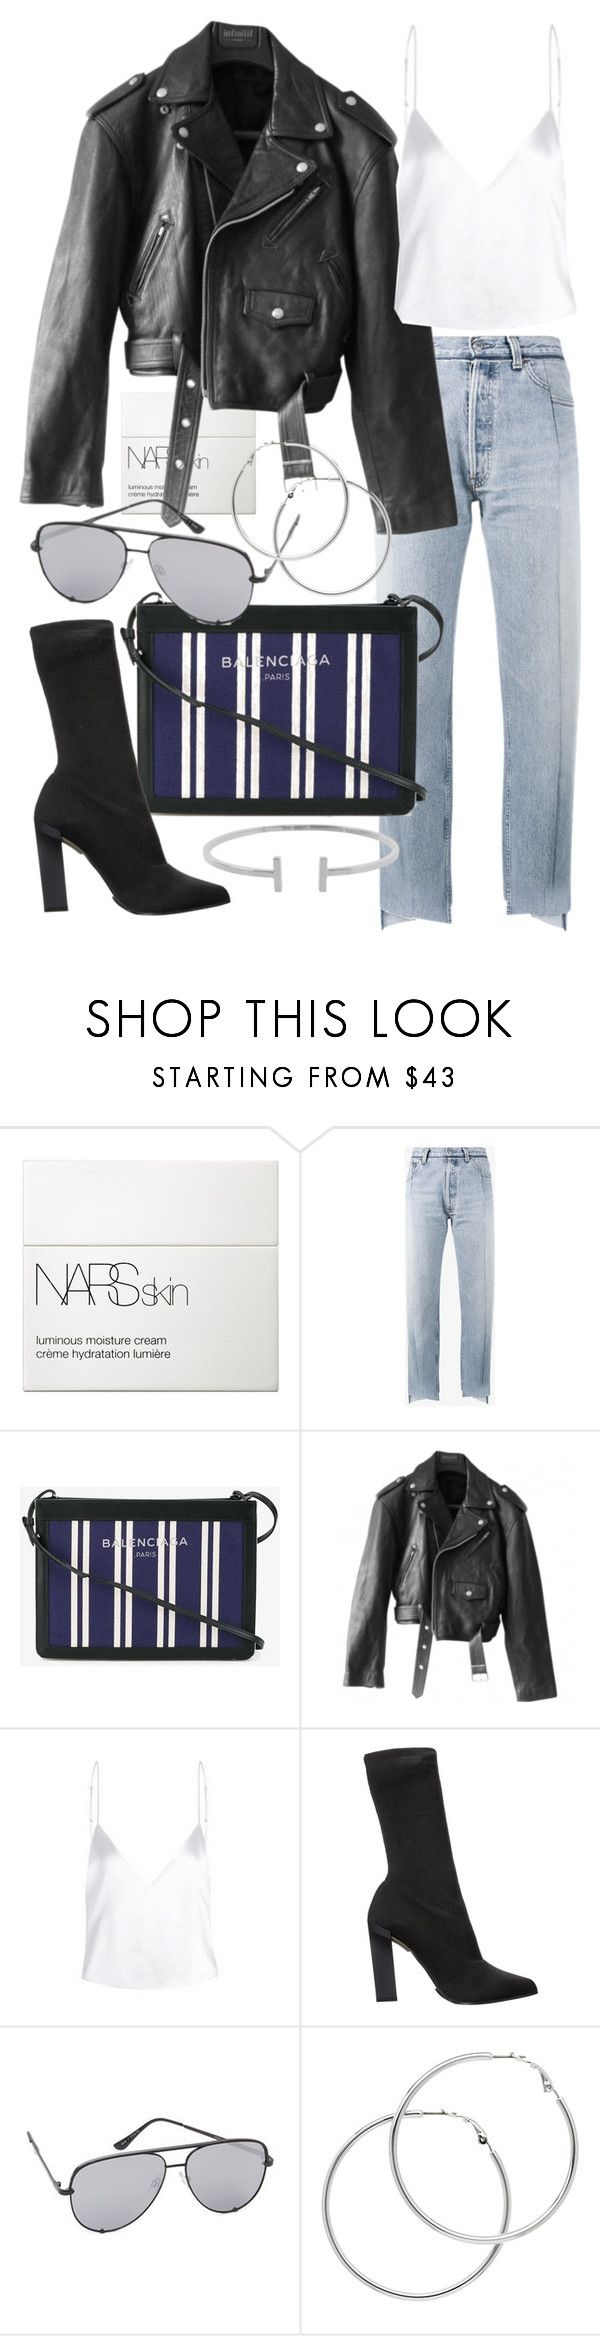 """""""Untitled #21155"""" by florencia95 ❤ liked on Polyvore featuring NARS Cosmetics, Vetements, Balenciaga, Jean-Paul Gaultier, Calvin Klein Collection, Quay, Melissa Odabash and Humble Chic"""